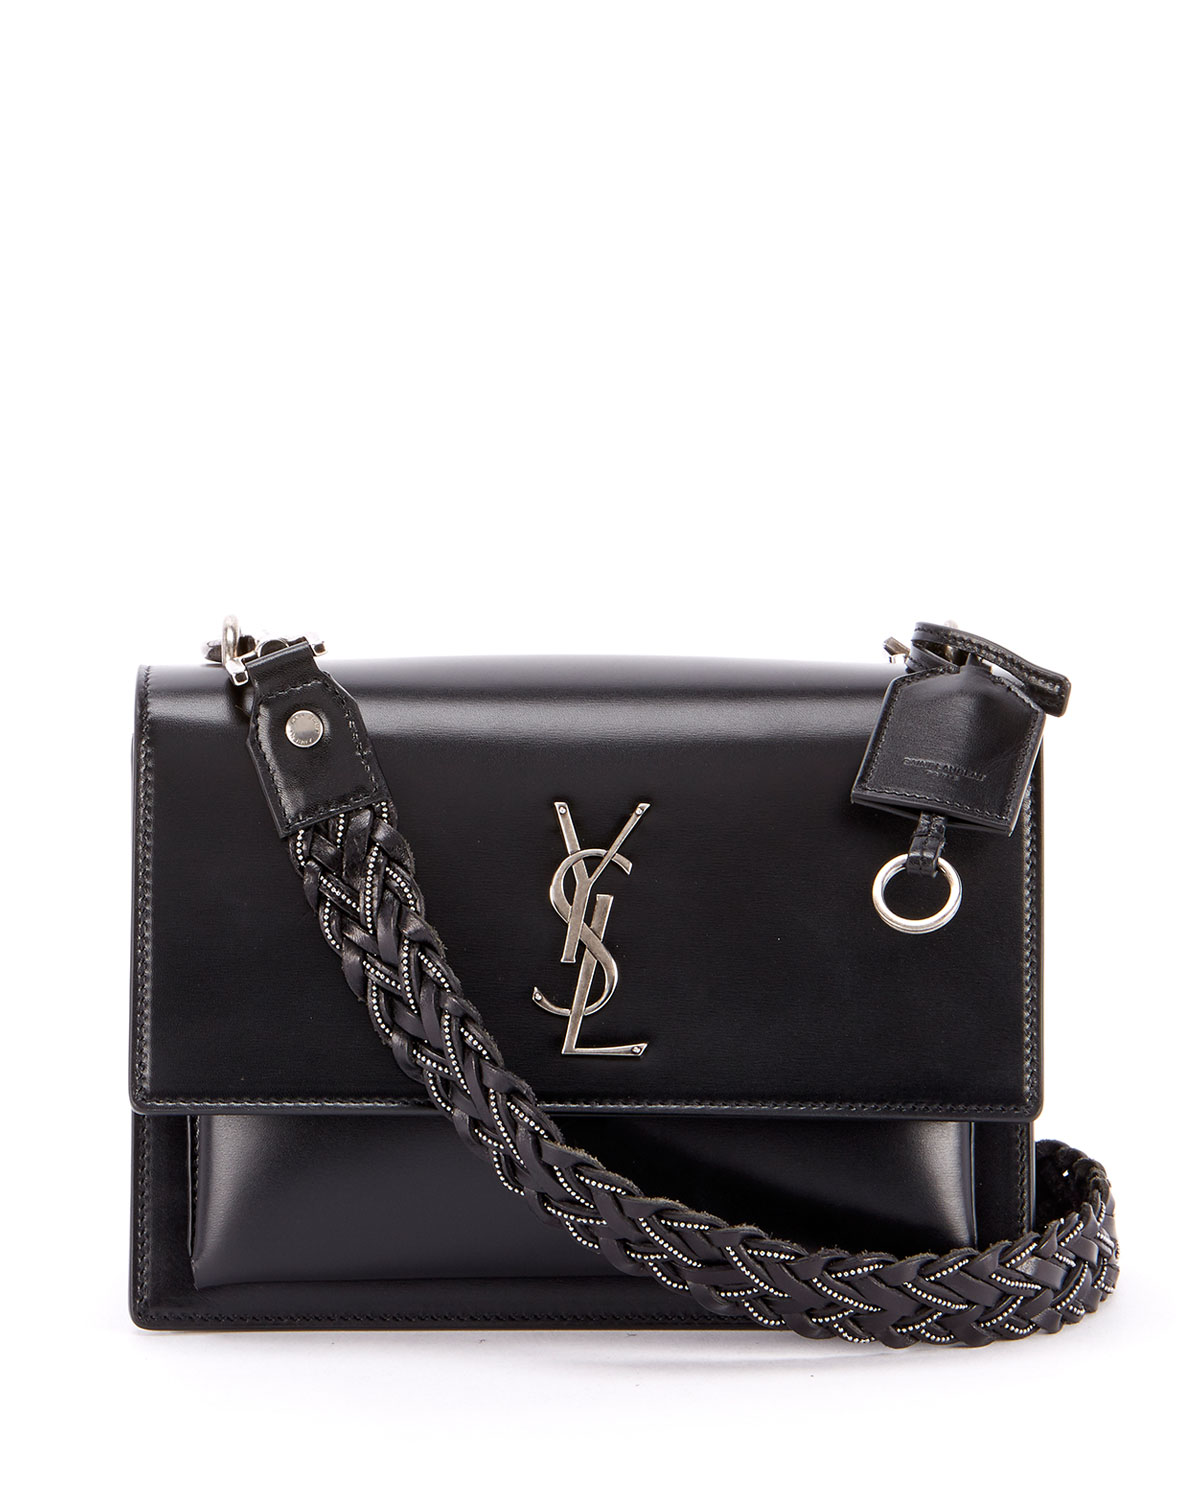 Saint LaurentSunset Medium YSL Monogram Flap Shoulder Bag - Silver Hardware bcebf9012a47a